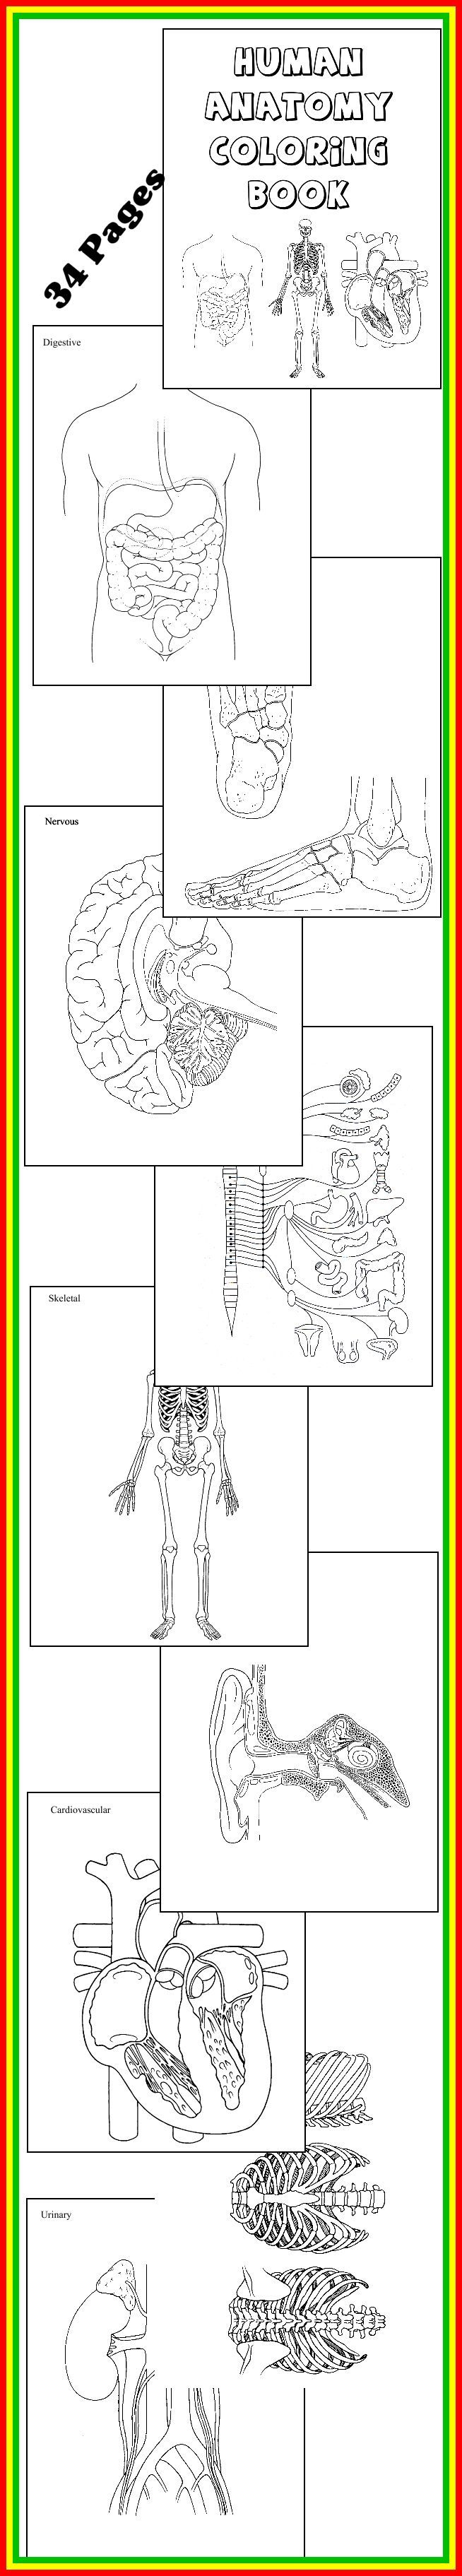 "Cycle 3 - HUMAN ANATOMY COLORING BOOK * 32 diagrams to color and label! Download Club members can download @ http://www.christianhomeschoolhub.spruz.com/science-1st---12th.htm (Under ""The Human Body - Unit Studies)"